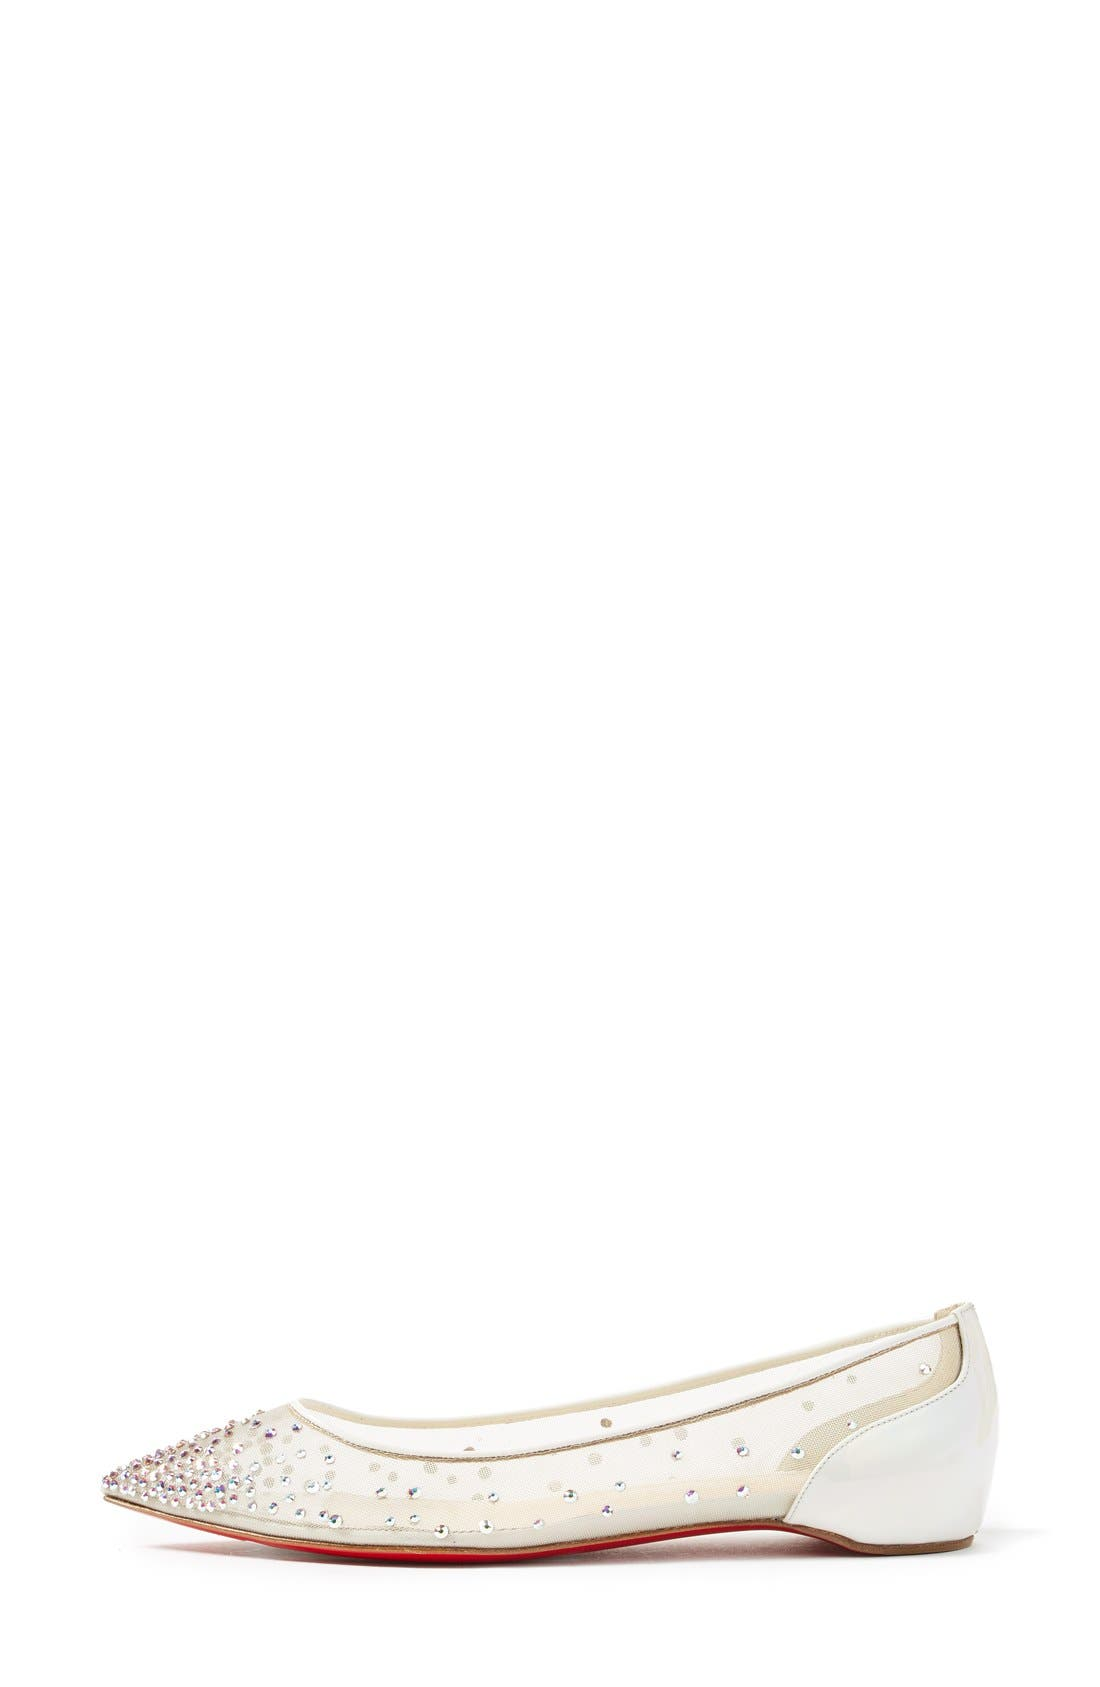 Follies Strass Pointy Toe Flat,                             Alternate thumbnail 4, color,                             White